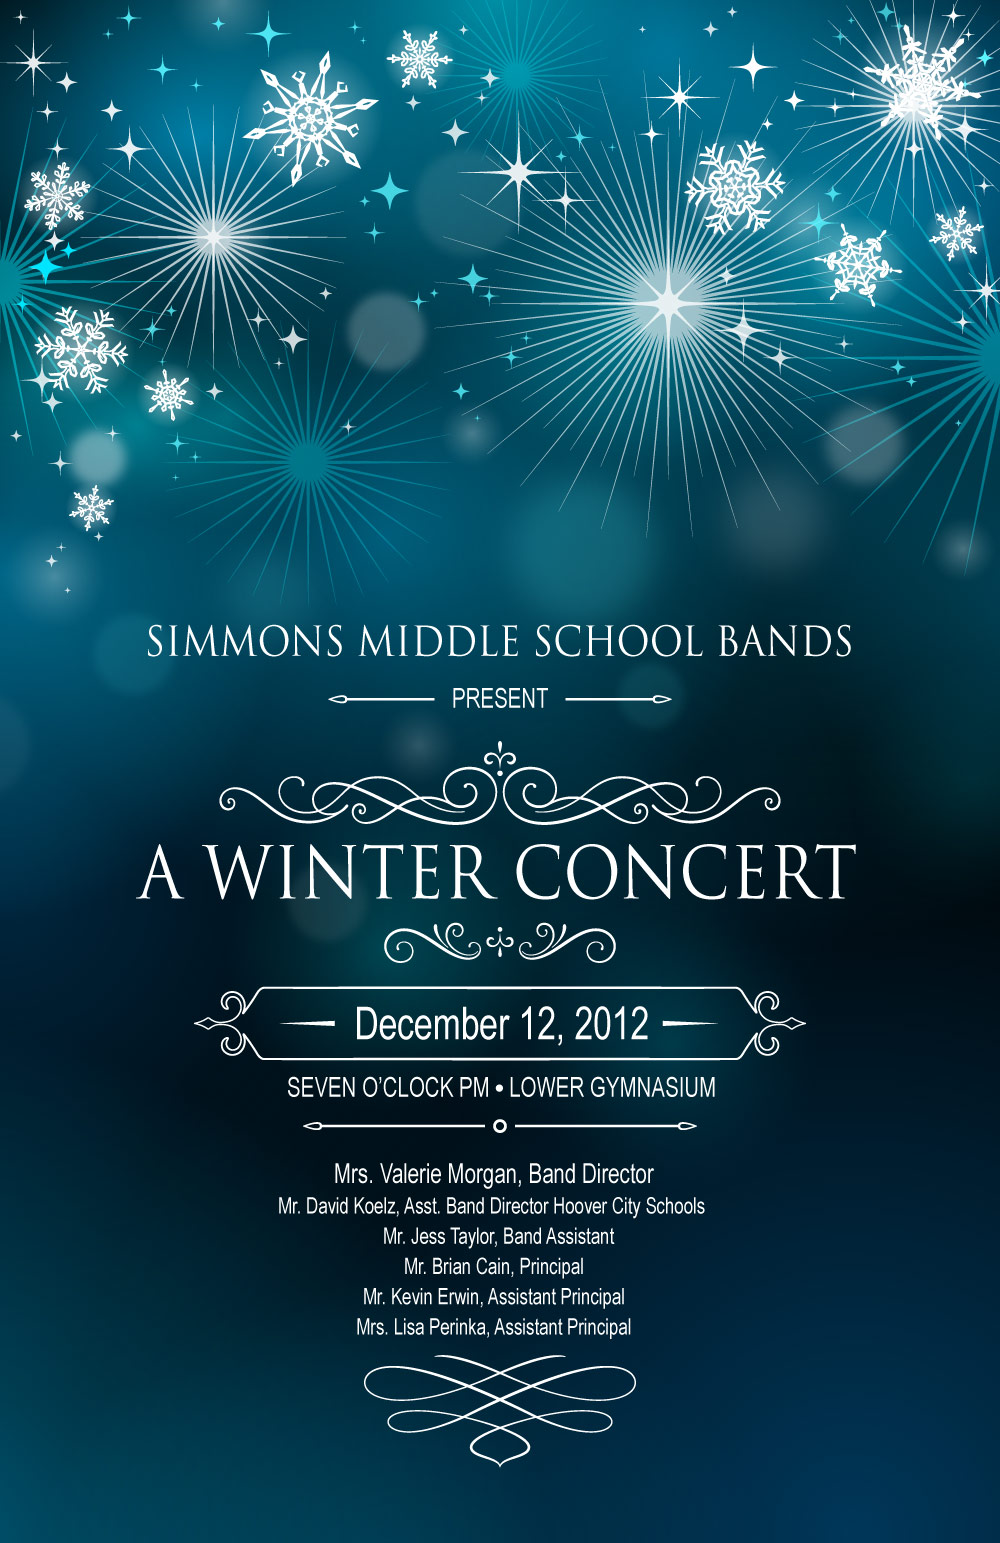 Simmons Band Winter Concert Program – Concert Program